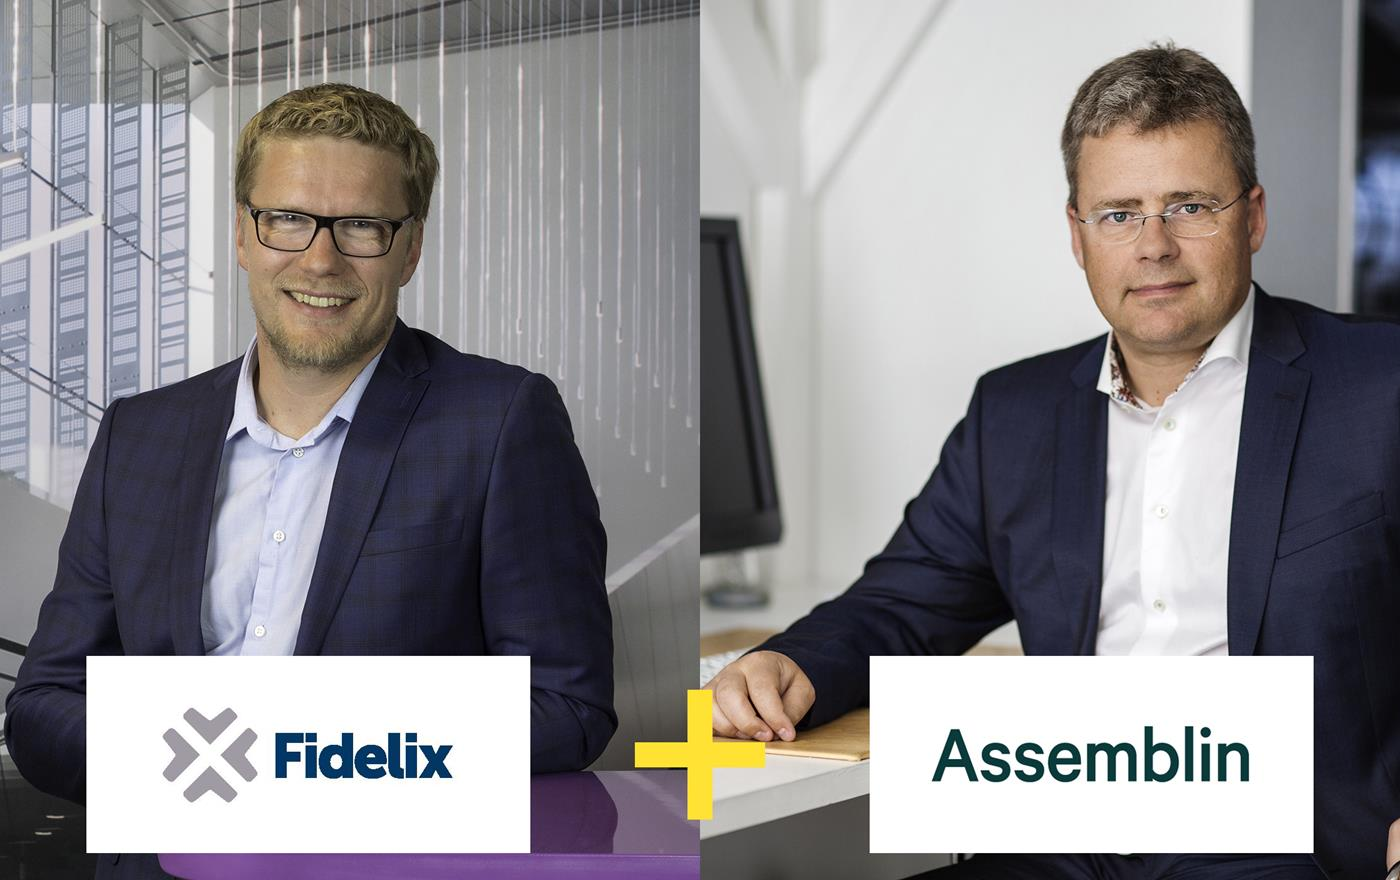 Assemblin accelerates its transformation towards future building systems through the acquisition of Fidelix